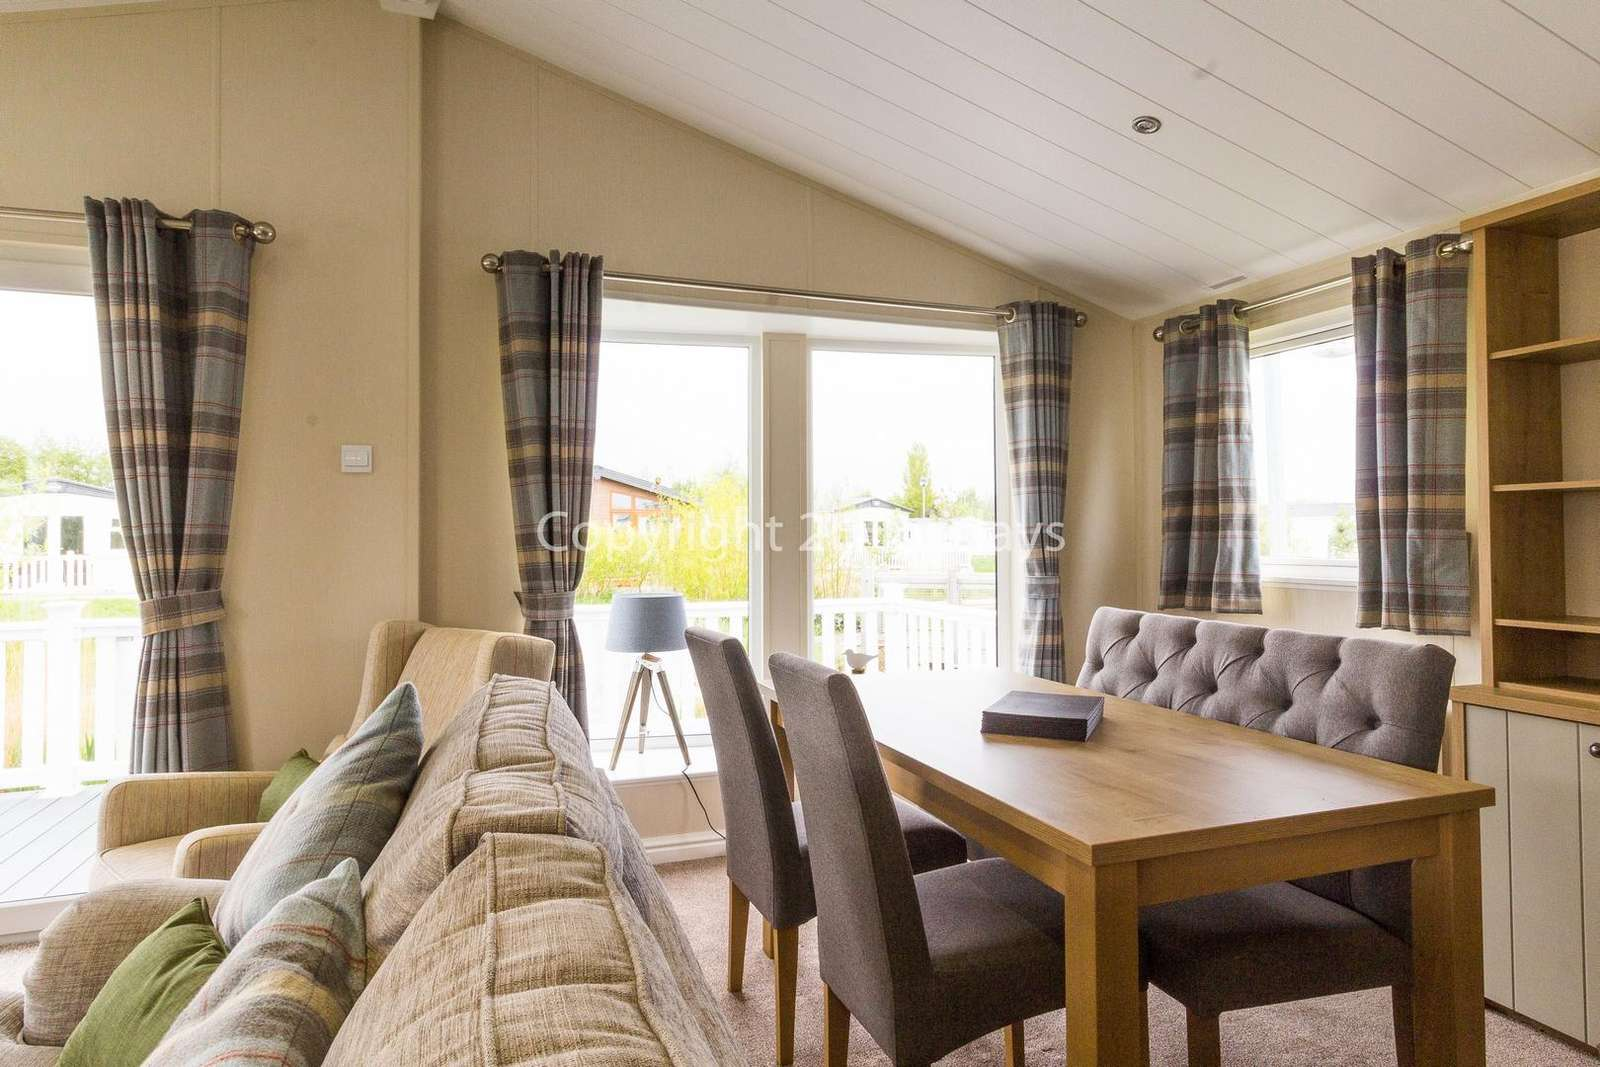 So many families have enjoyed their stay at Southview Holiday Park!